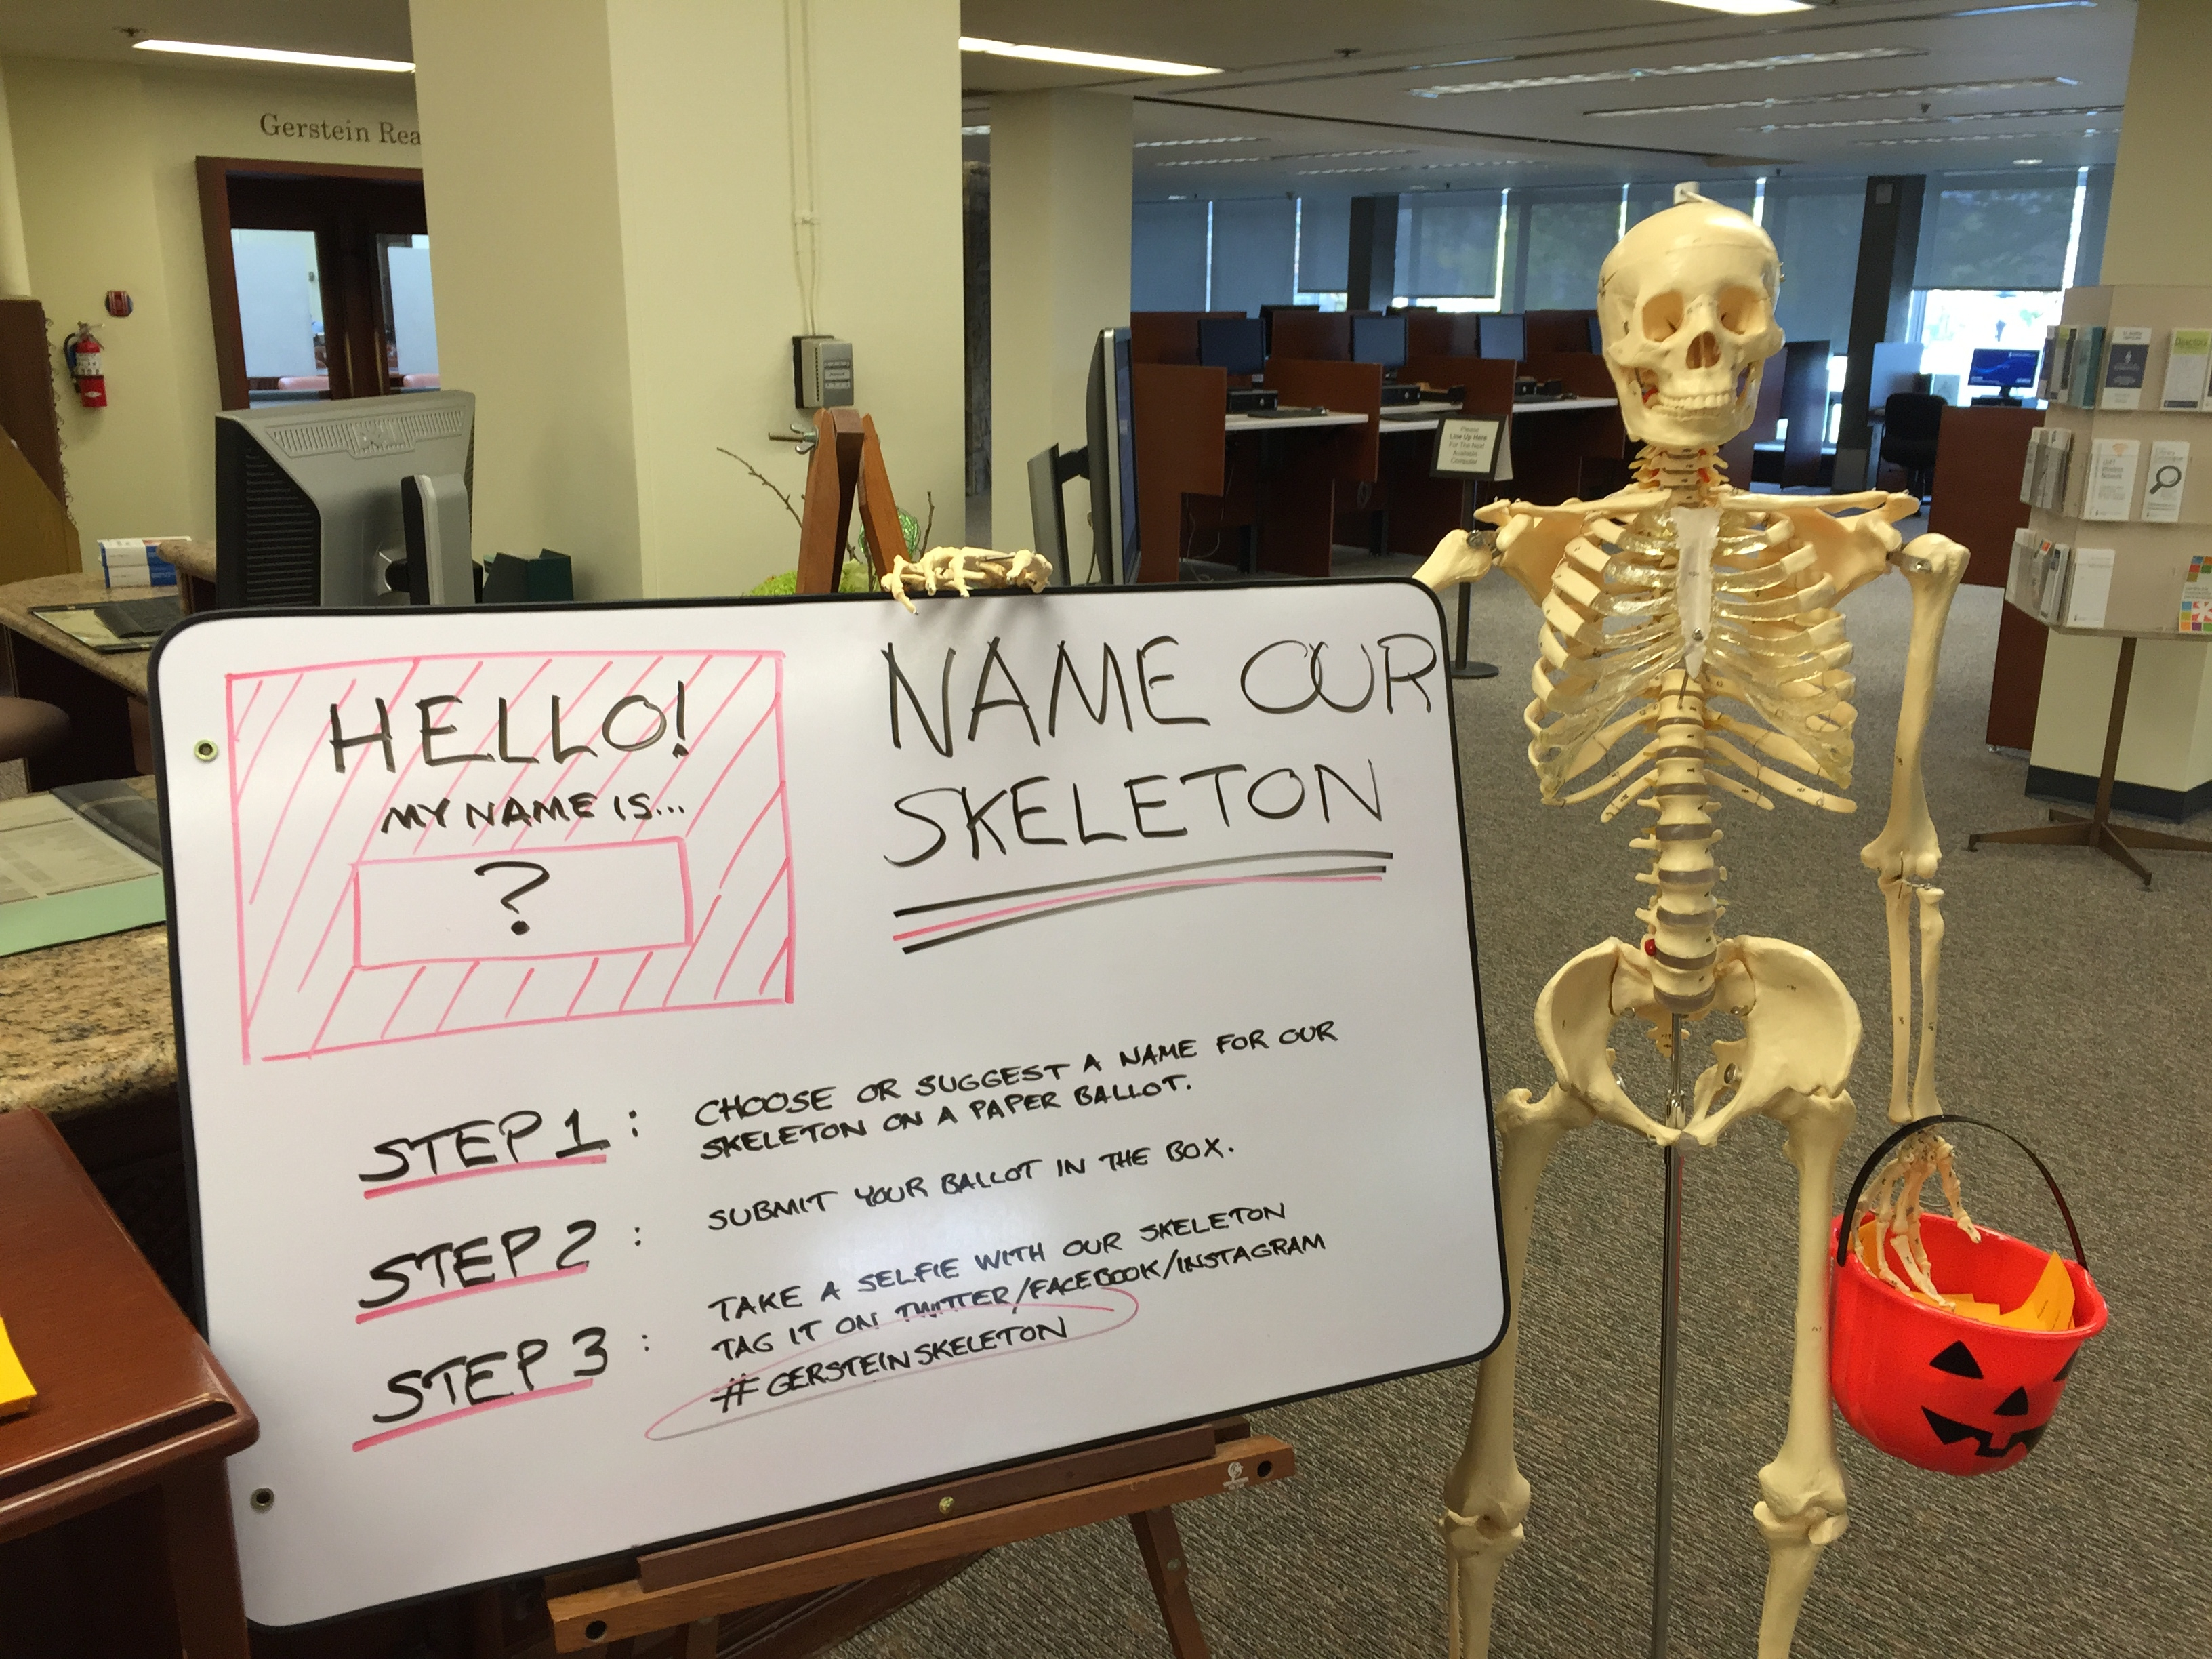 Gerstein skeleton holding orange pumpkin pail for votes. To the left is a board describing steps of how to name the skeleton